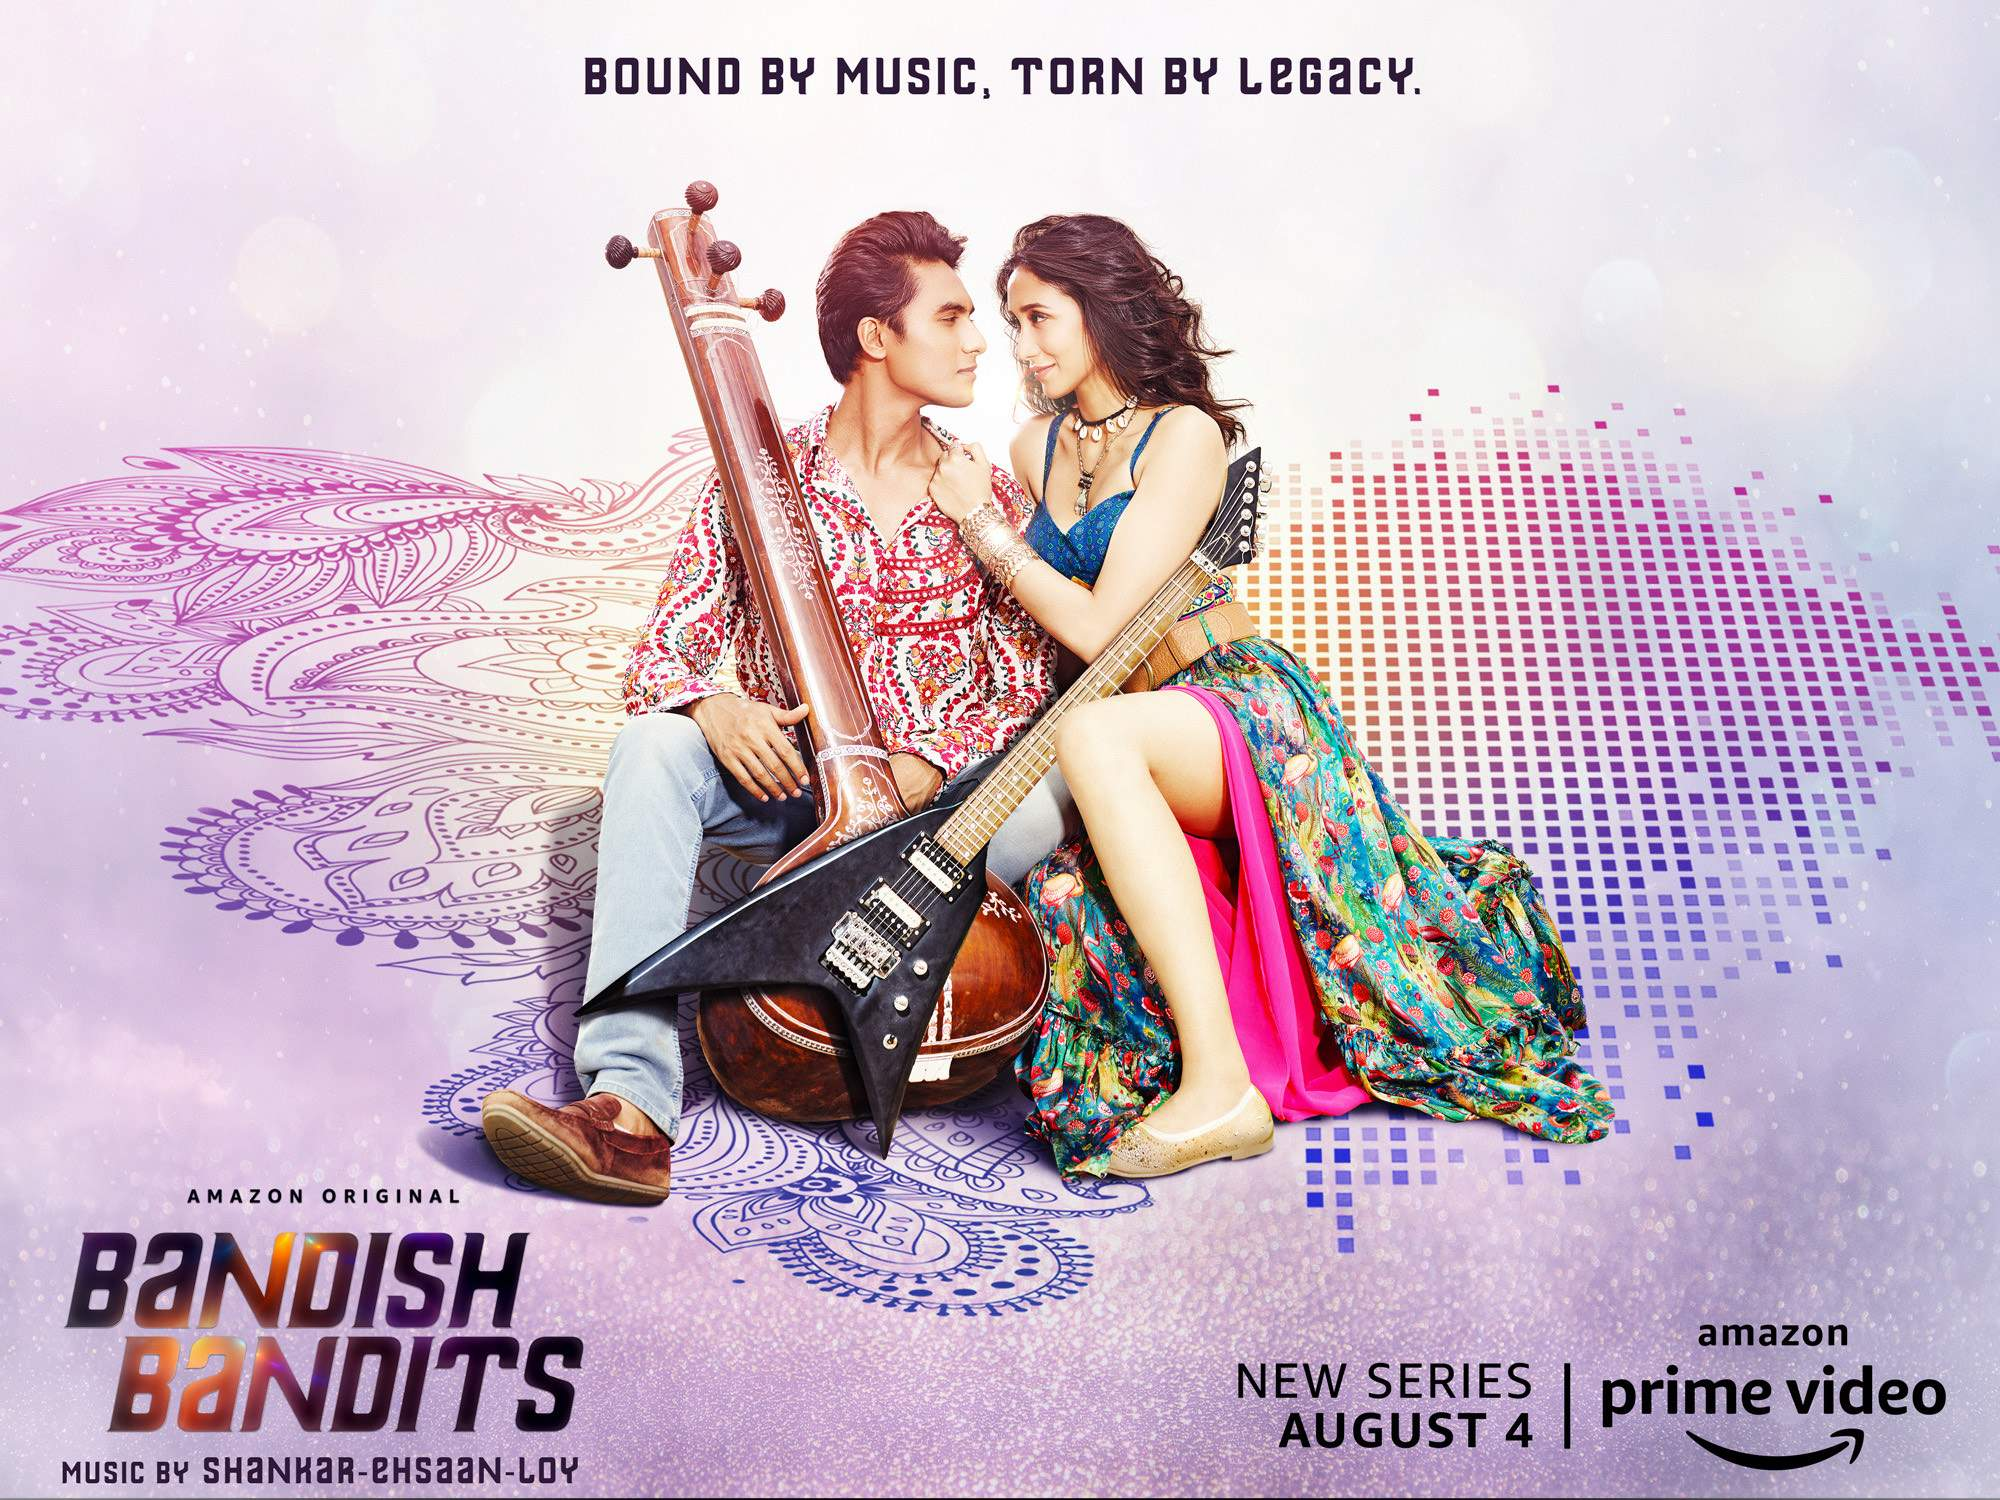 How To Watch Bandish Bandits For Free?